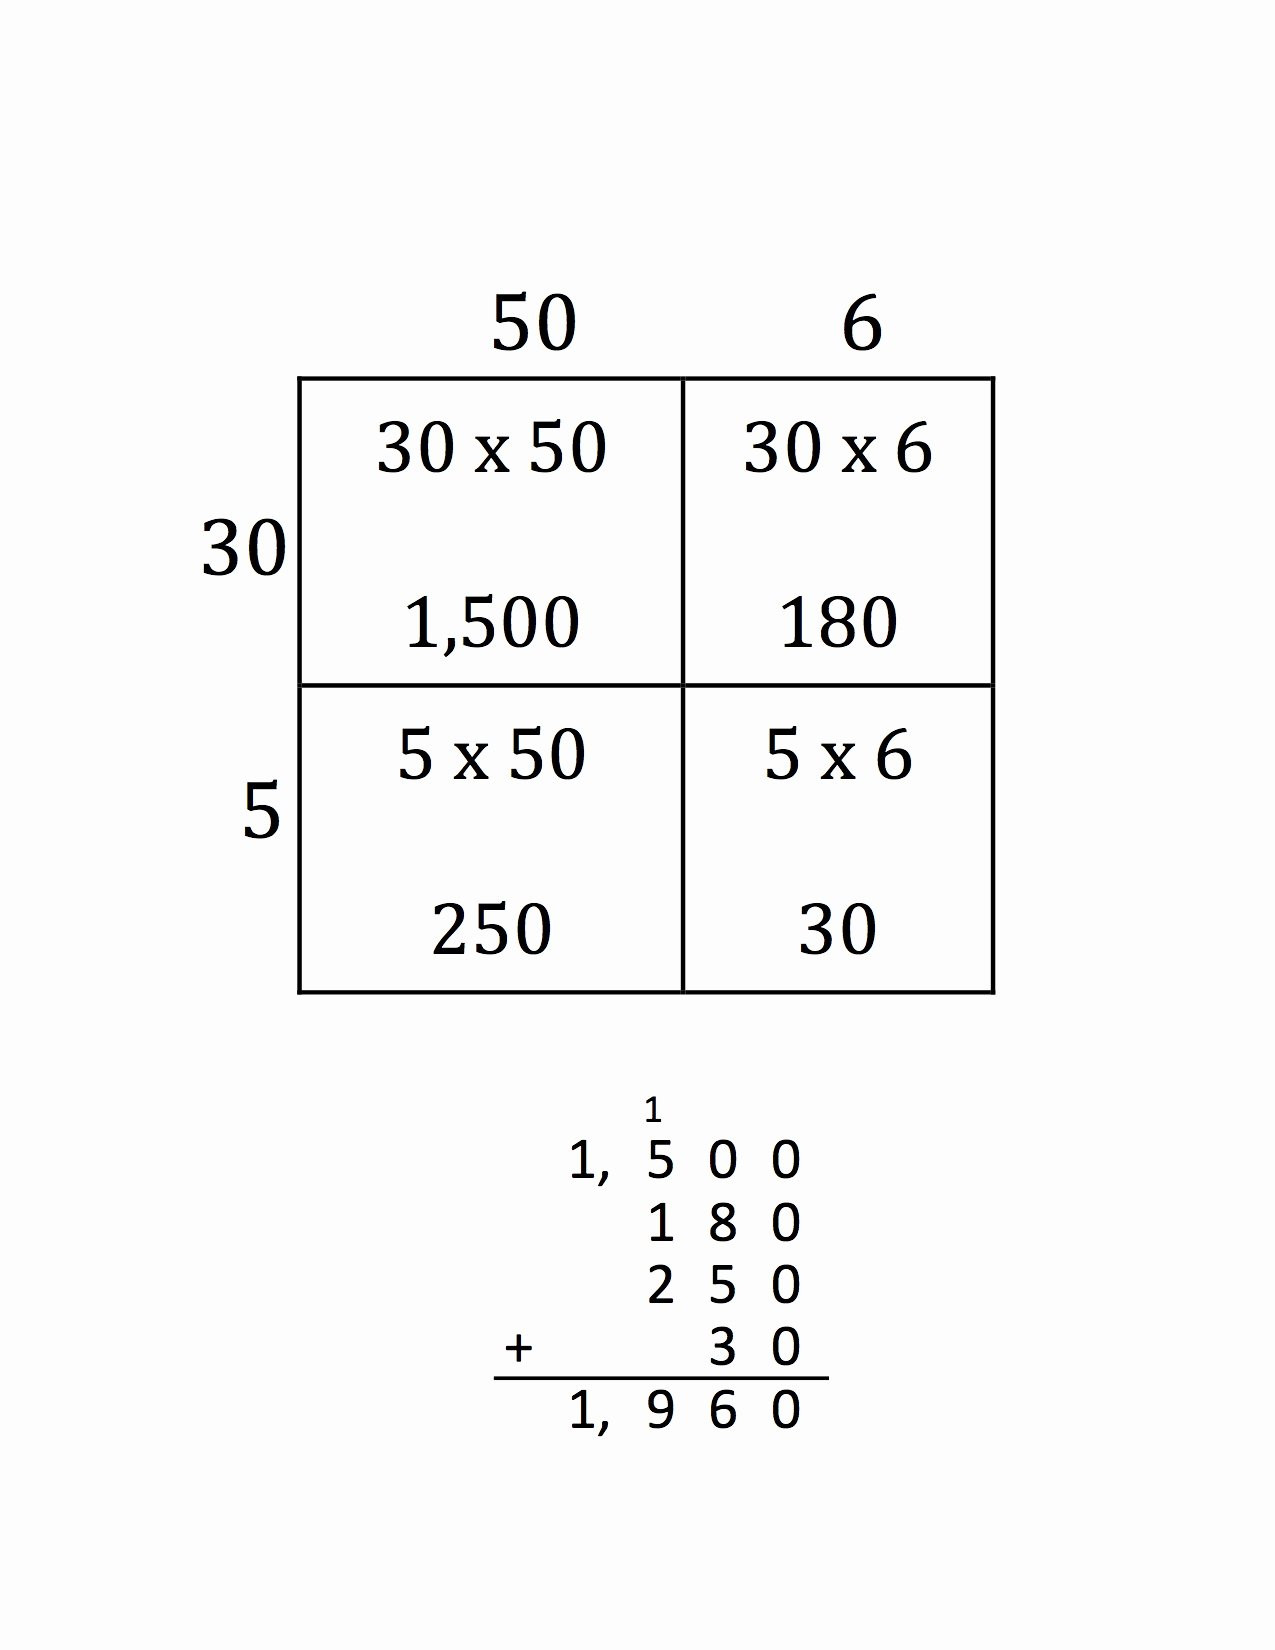 break apart method multiplication worksheets top math miss bupp s class of break apart method multiplication worksheets